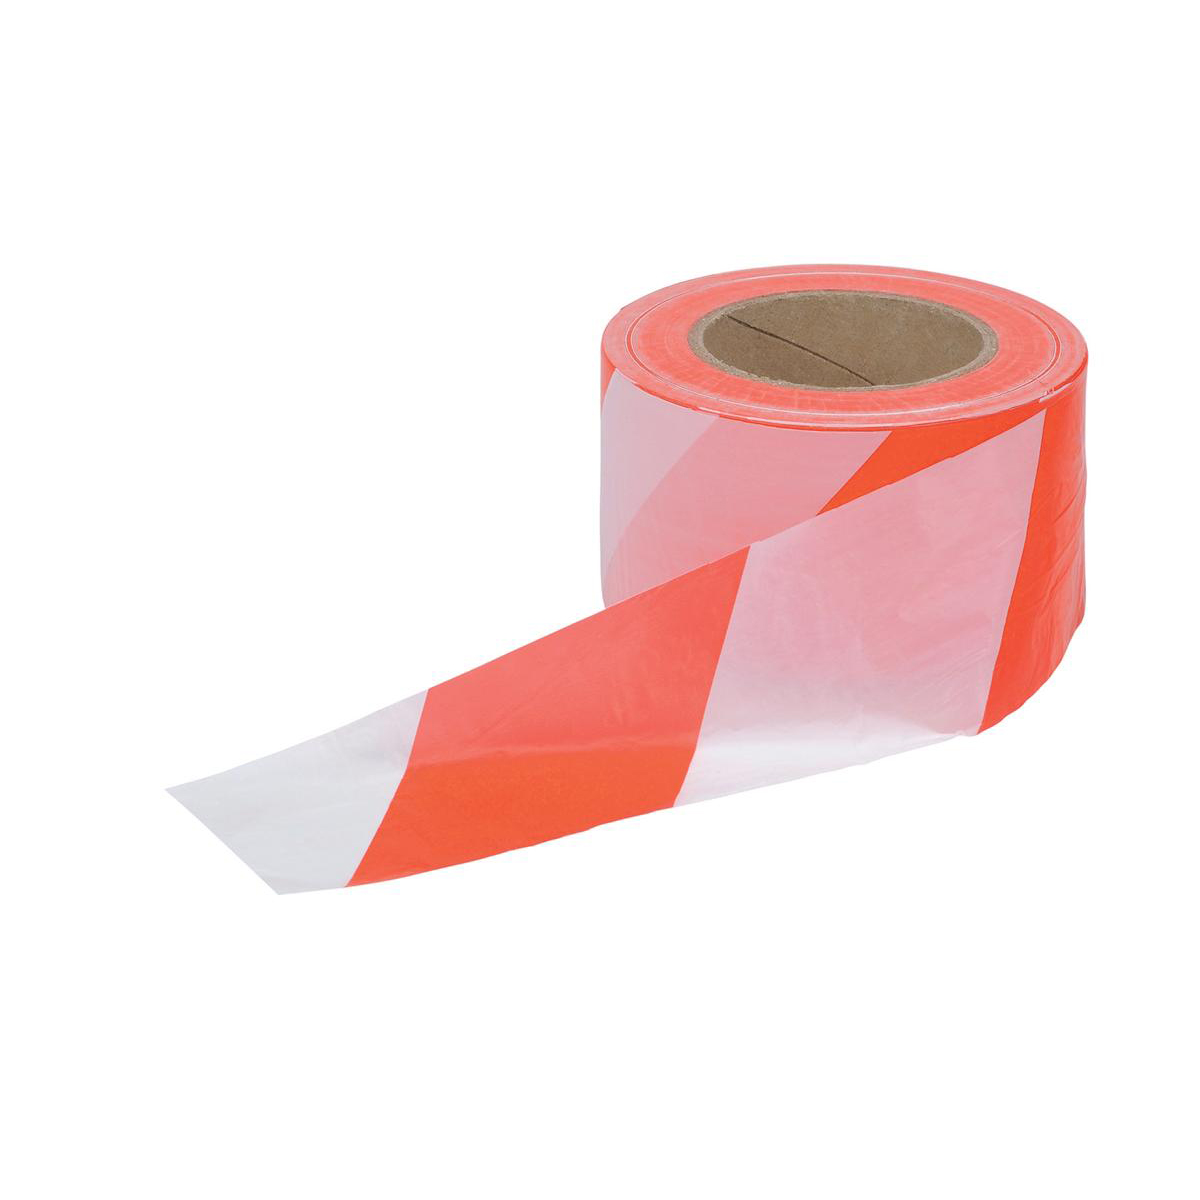 Barrier tapes or chains 5 Star Office Barrier Tape in Dispenser Box 70mmx500m Red and White